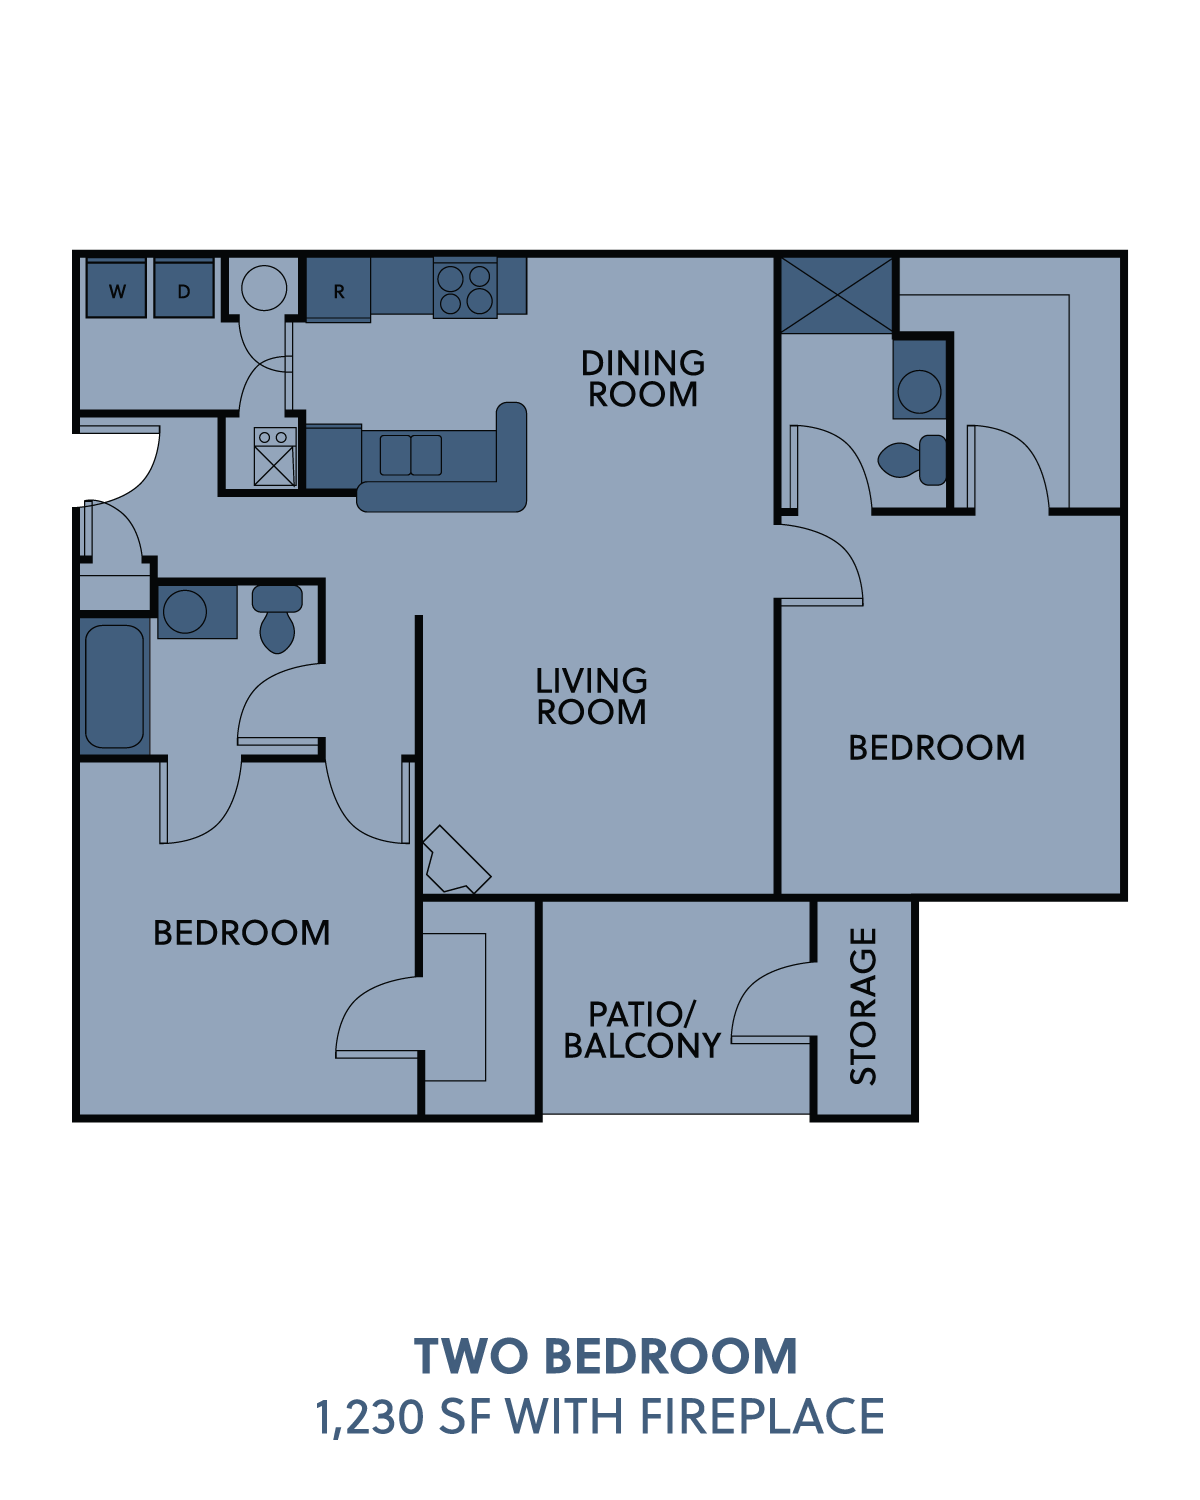 2 bedroom with fireplace